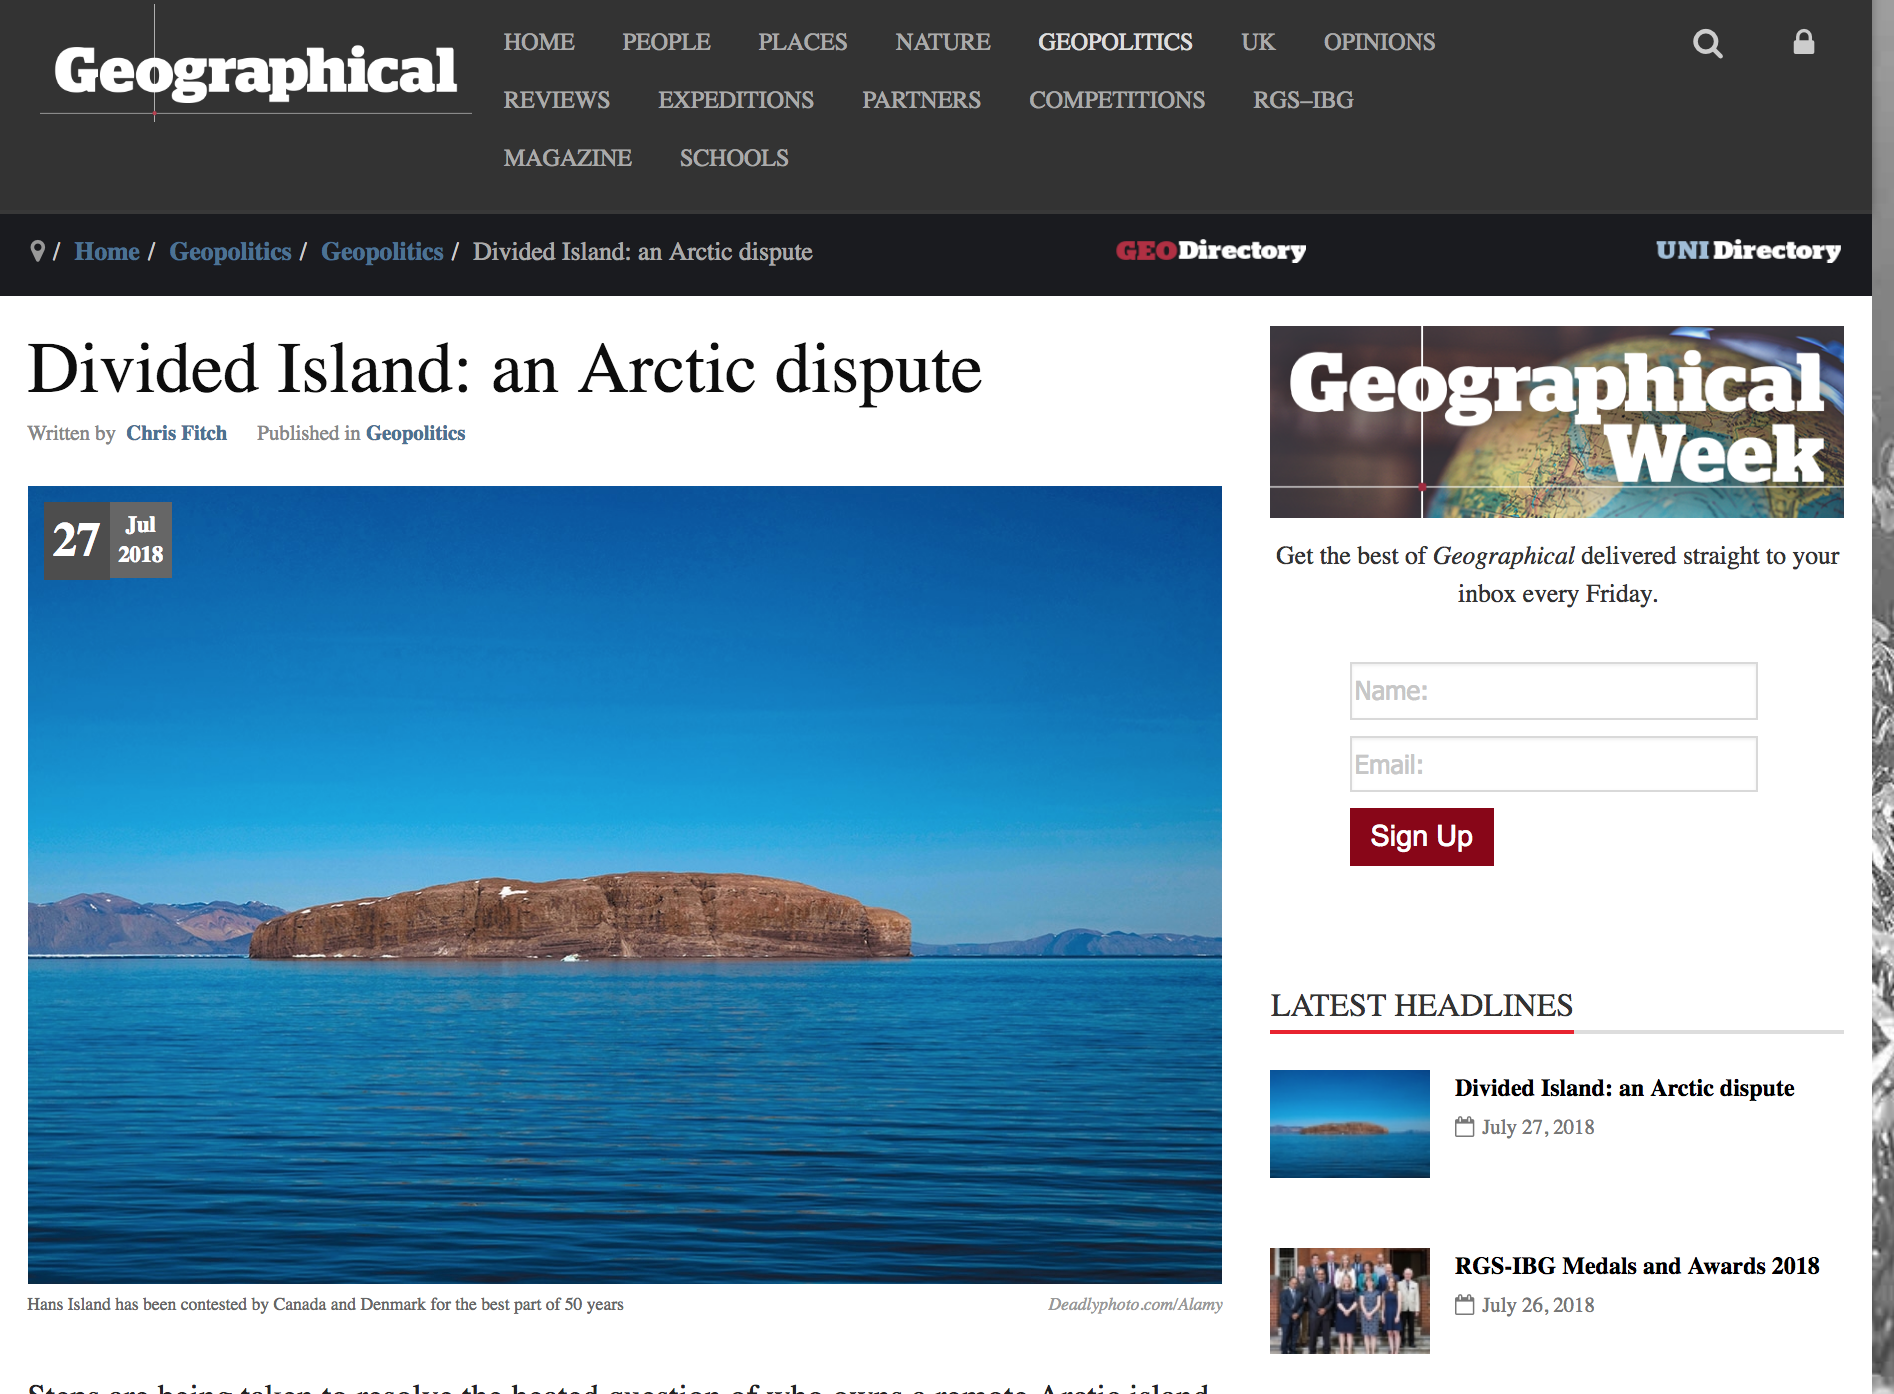 Divided Island: an Arctic dispute